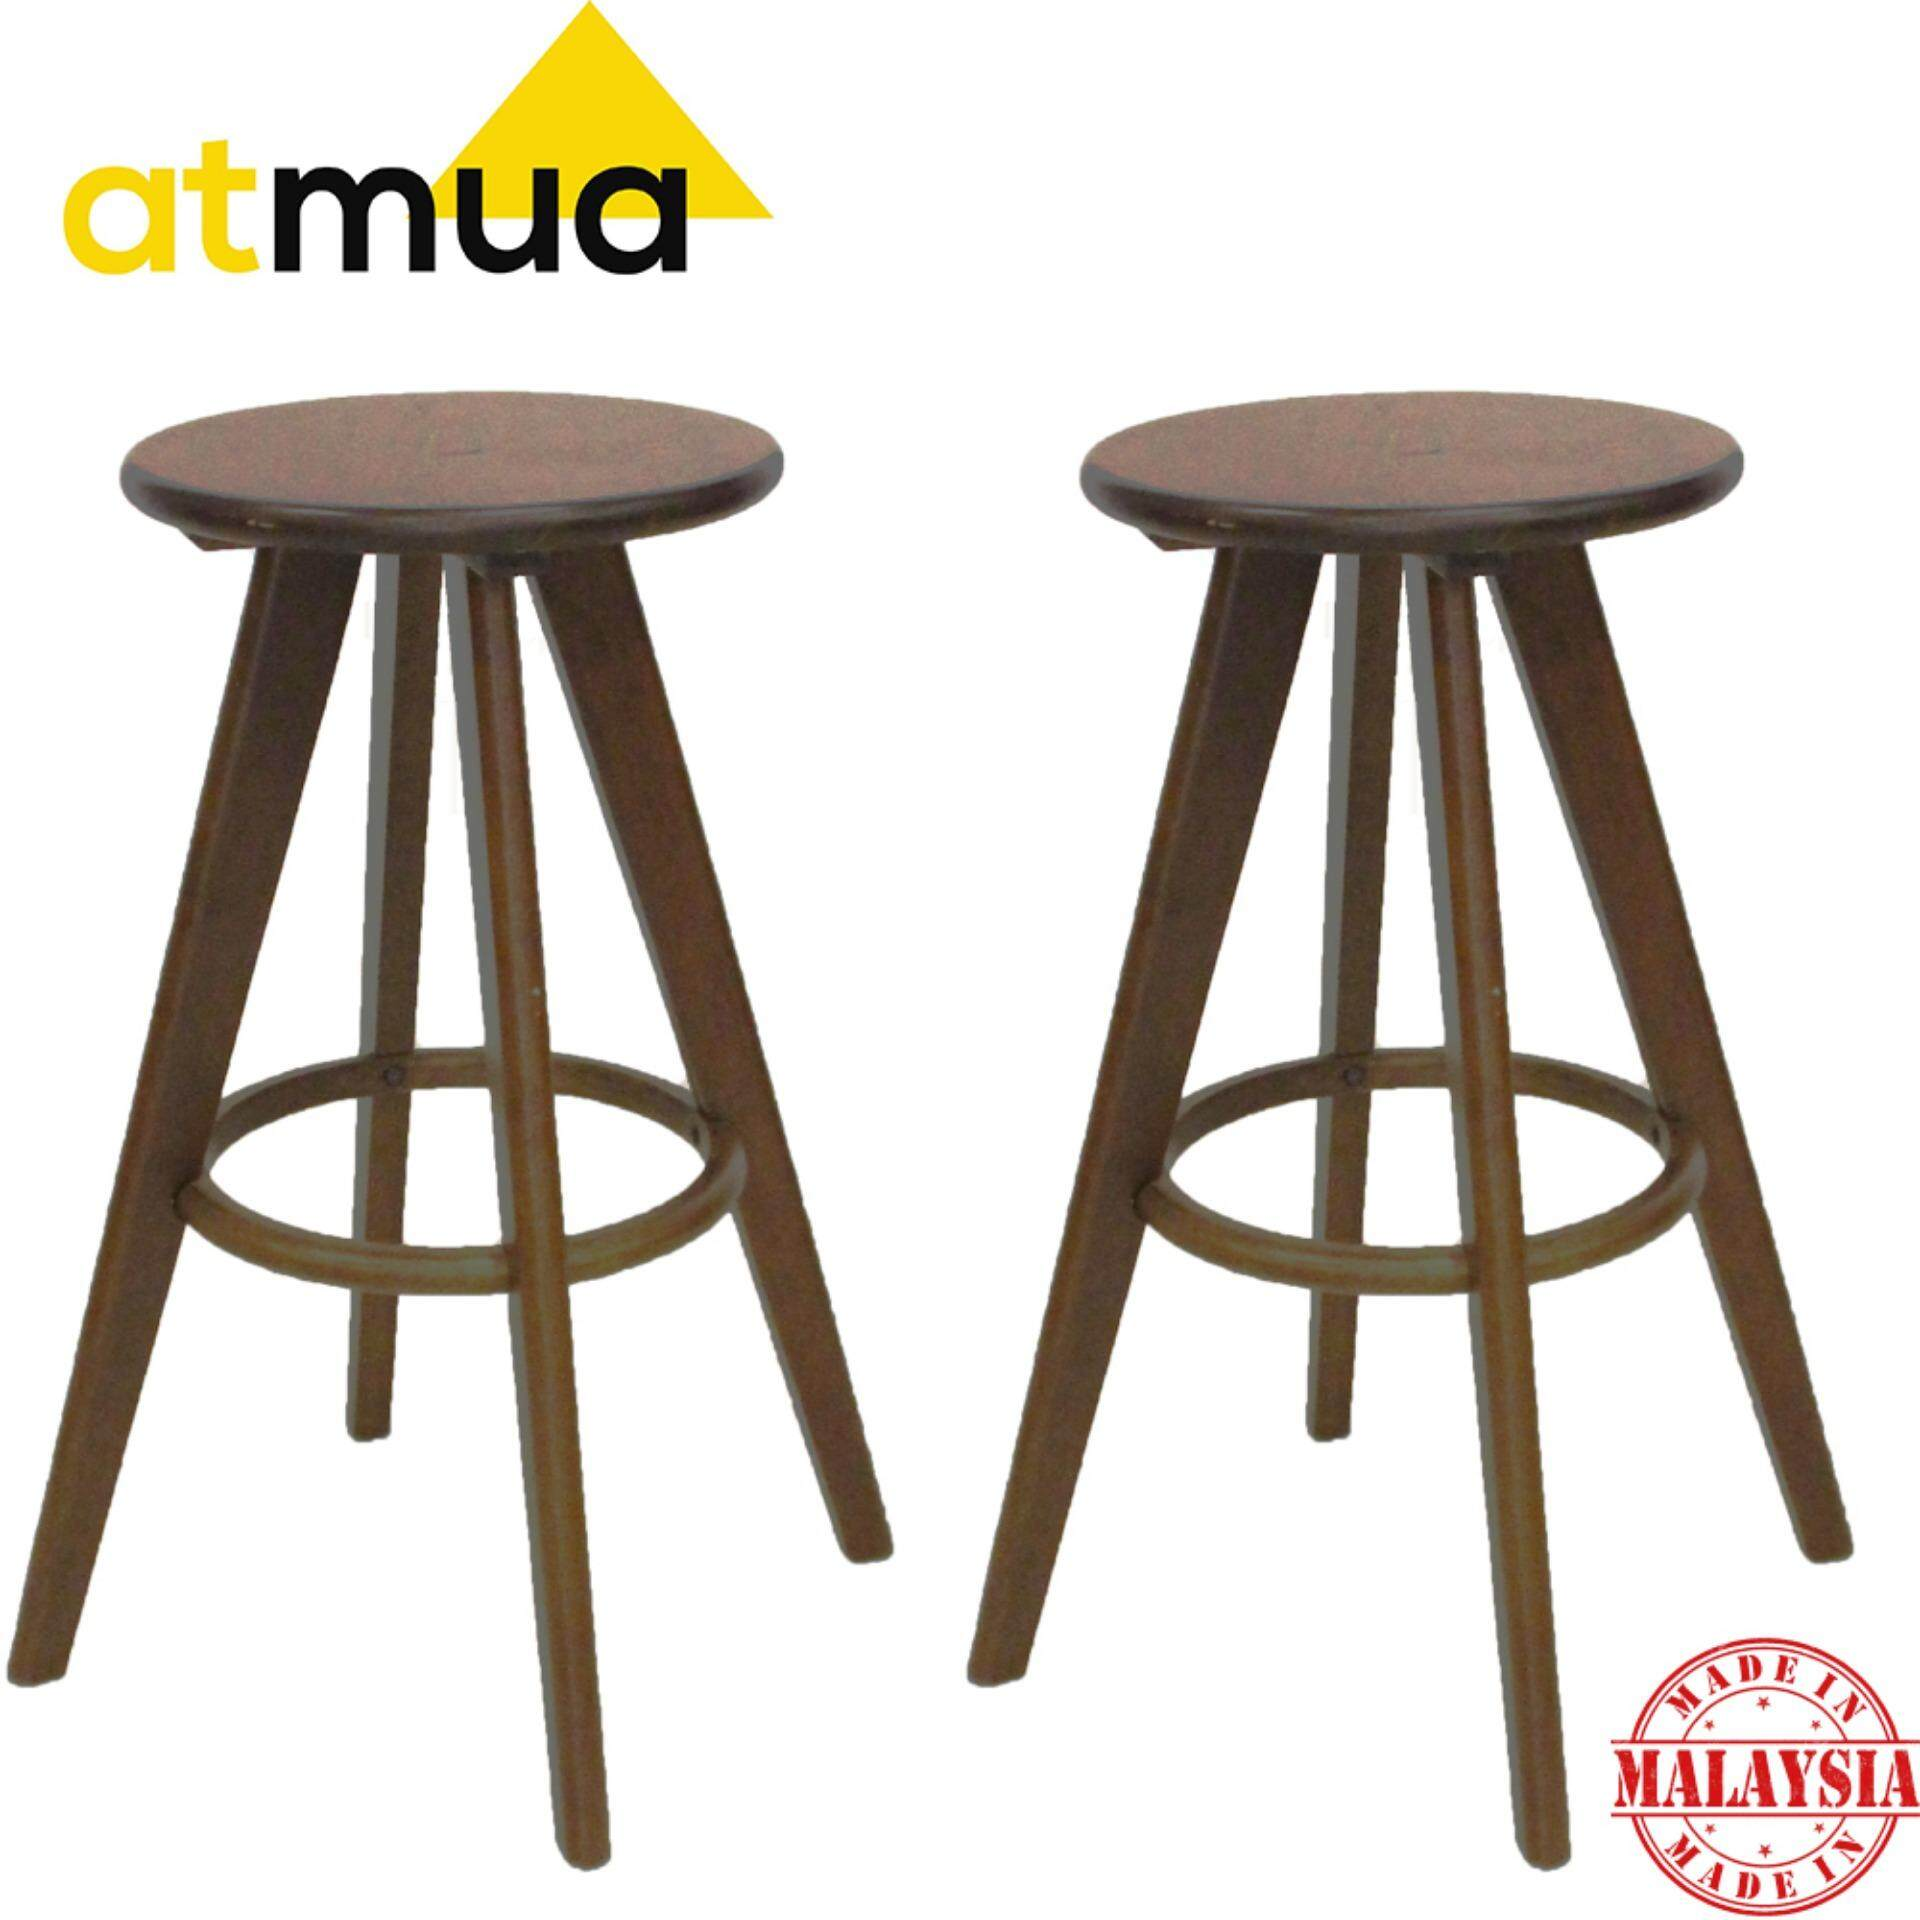 Surprising Atmua Jonathan Solid Wood Bar Stool Height 70Cm 30 Inch Solid Rubber Wood 2 Unit Theyellowbook Wood Chair Design Ideas Theyellowbookinfo